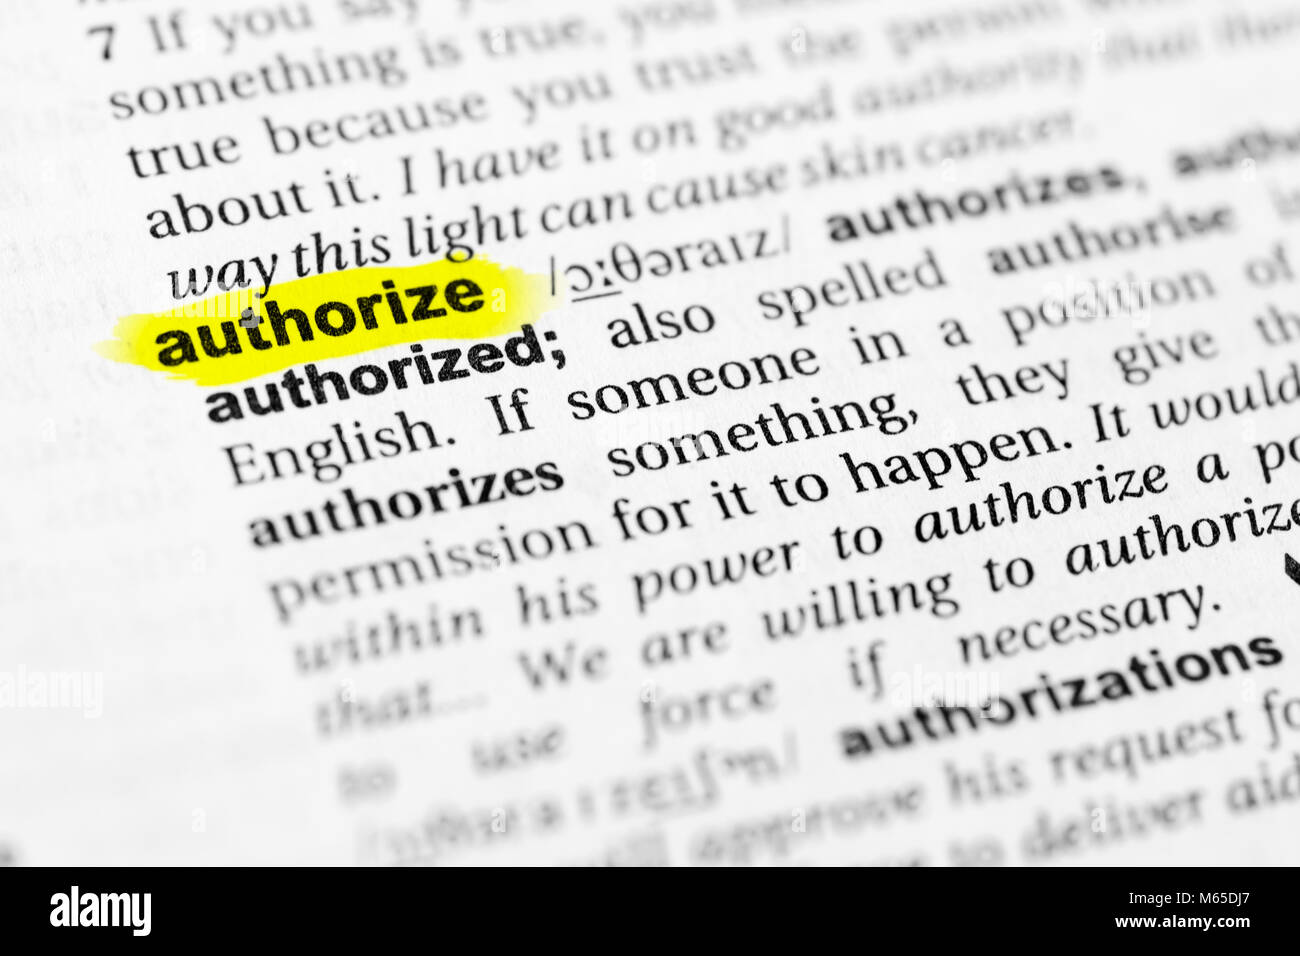 Highlighted English word 'authorize' and its definition in the dictionary. - Stock Image